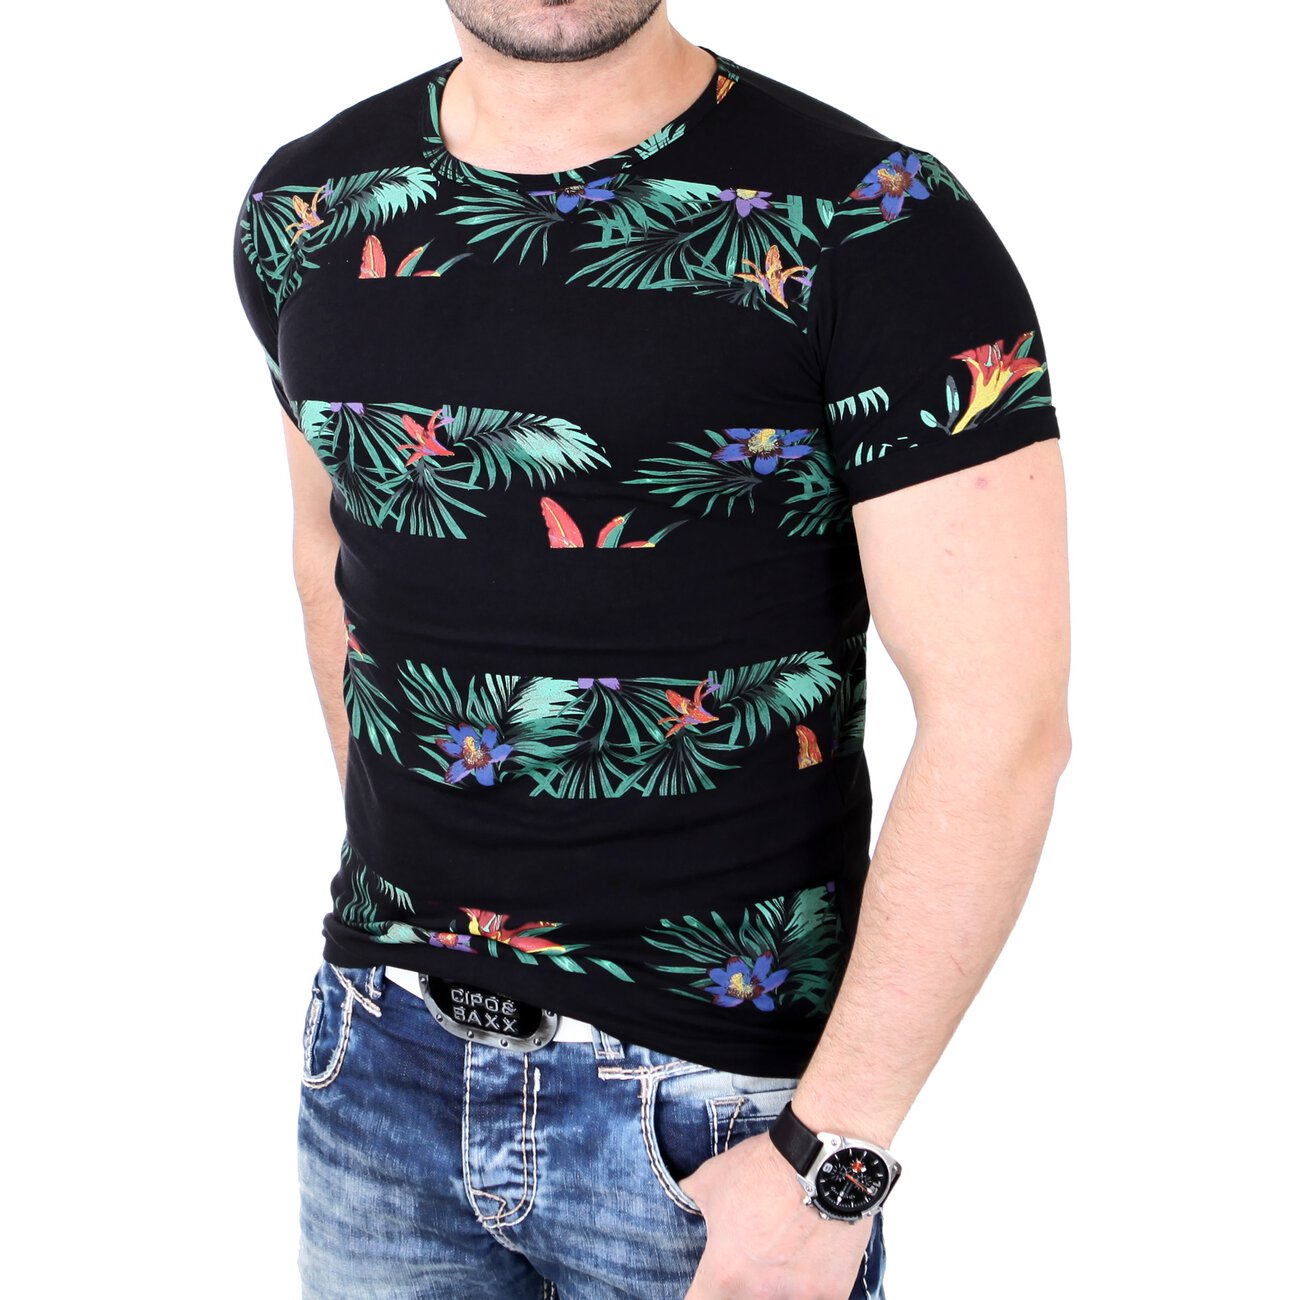 4cdc5014020c0c Reslad T-Shirt Herren Floral Stripes Design Rundhals Shirt RS-7666 Sc